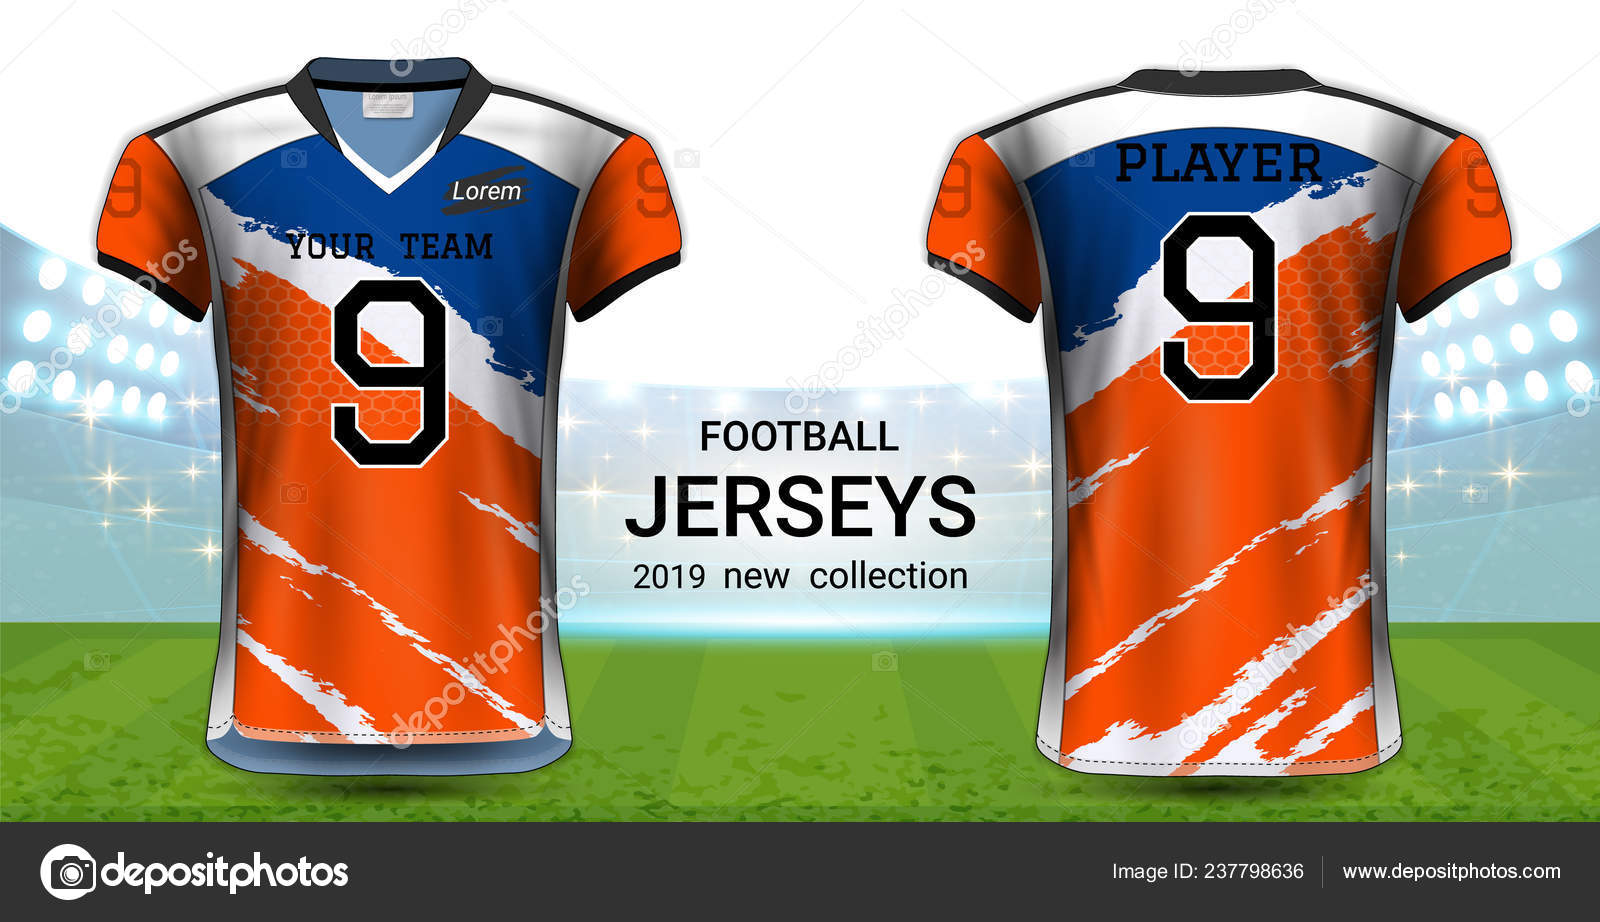 ebf45400187 American Football or Soccer Jerseys Uniforms, Realistic Graphic Design  Front and Back View for Presentation Mockup Template, Easy Possibility to  Apply Your ...